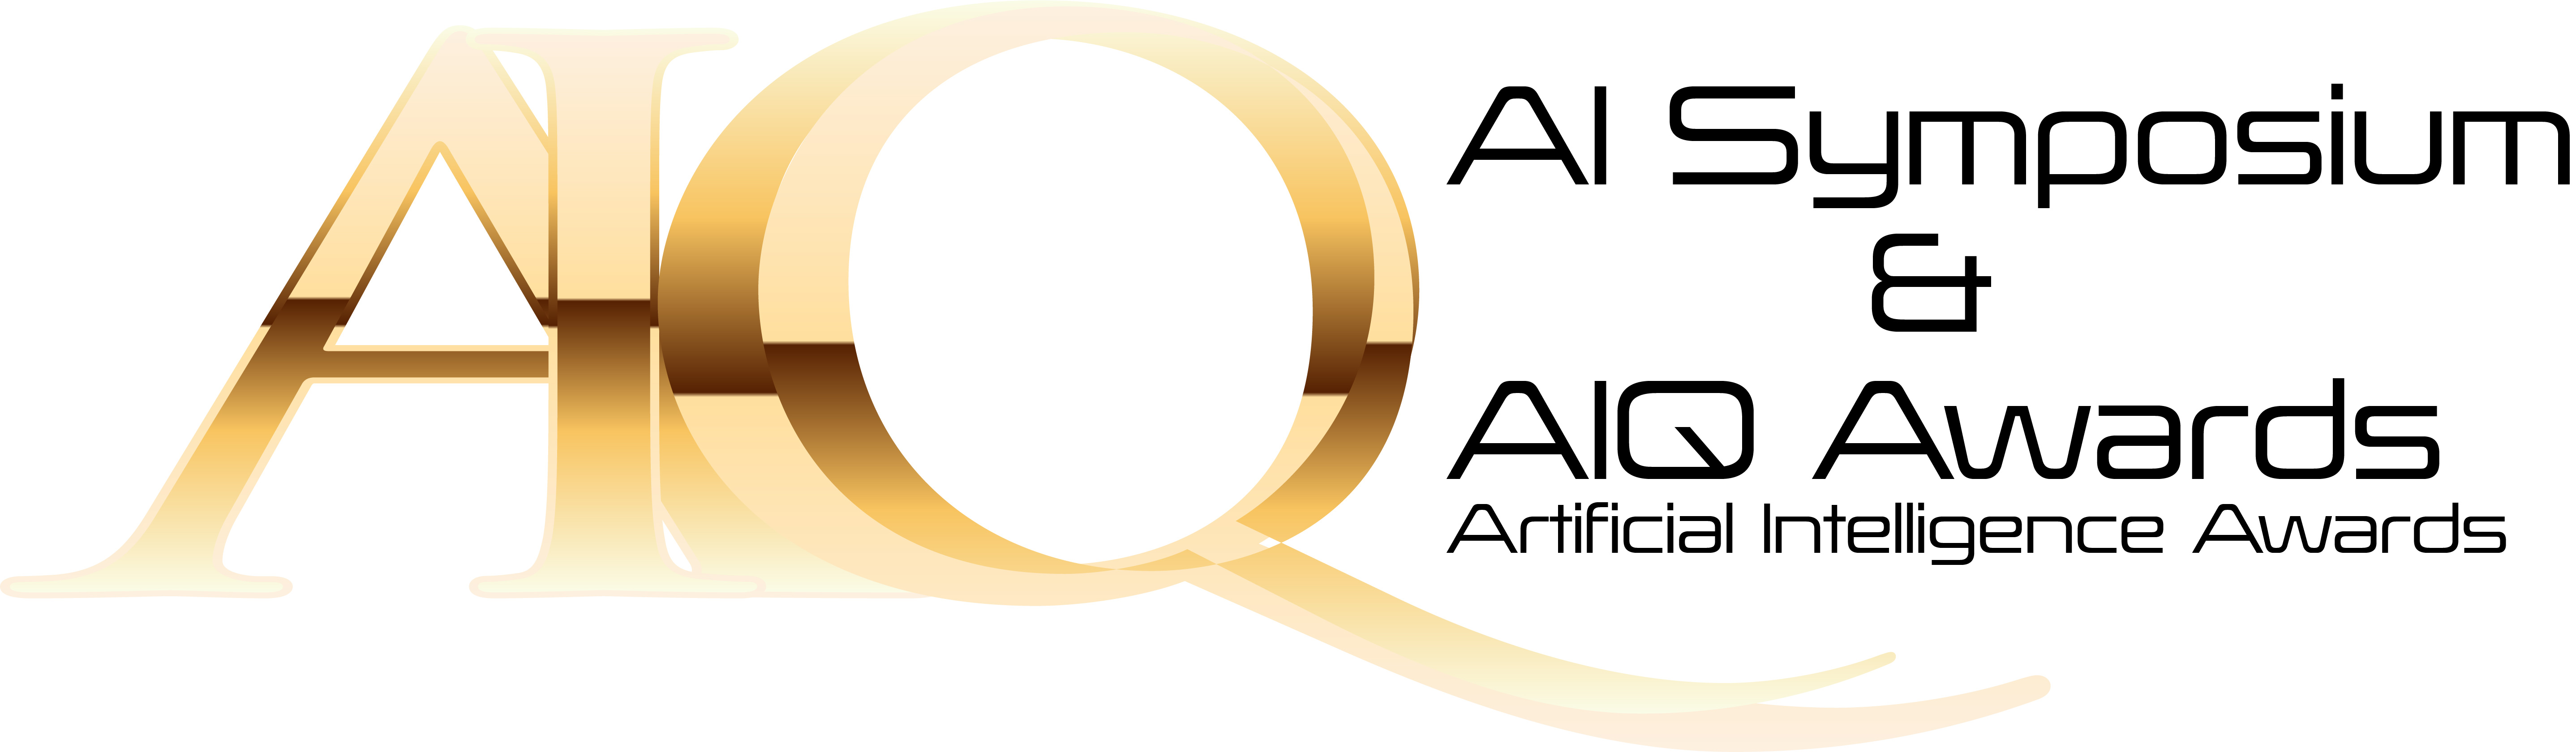 Call for Registration, Papers and Nominations for IQAwards  sought by #AI User Forum